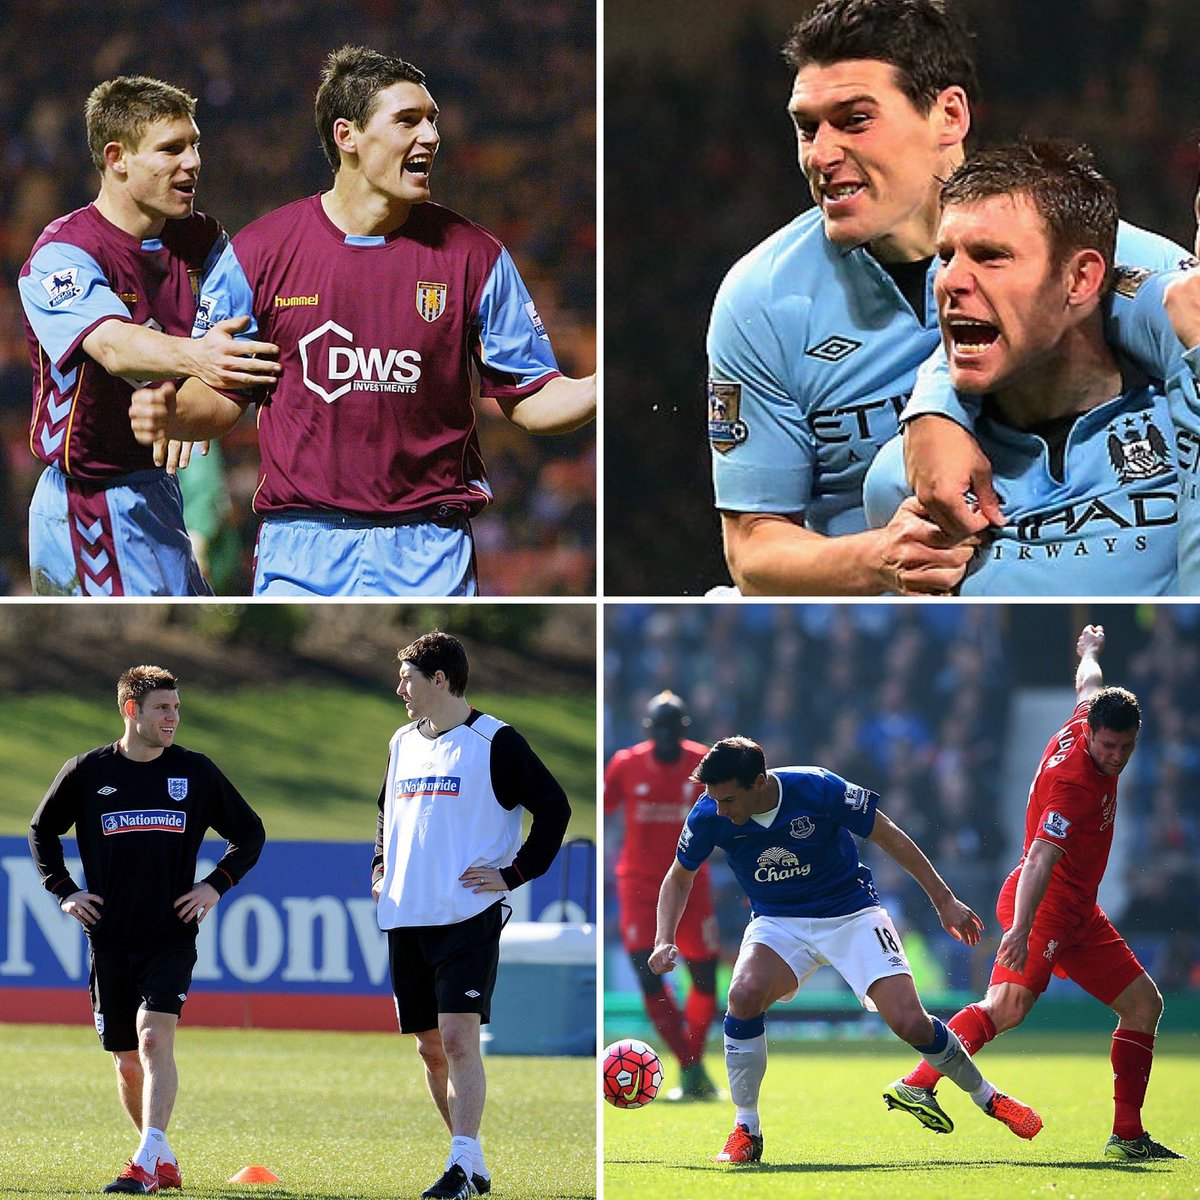 Congrats to Gareth Barry on an unbelievable career.   What a guy, what a teammate, what an opponent 👏🏻 #premierleaguelegend https://t.co/iSKbnc9tCx